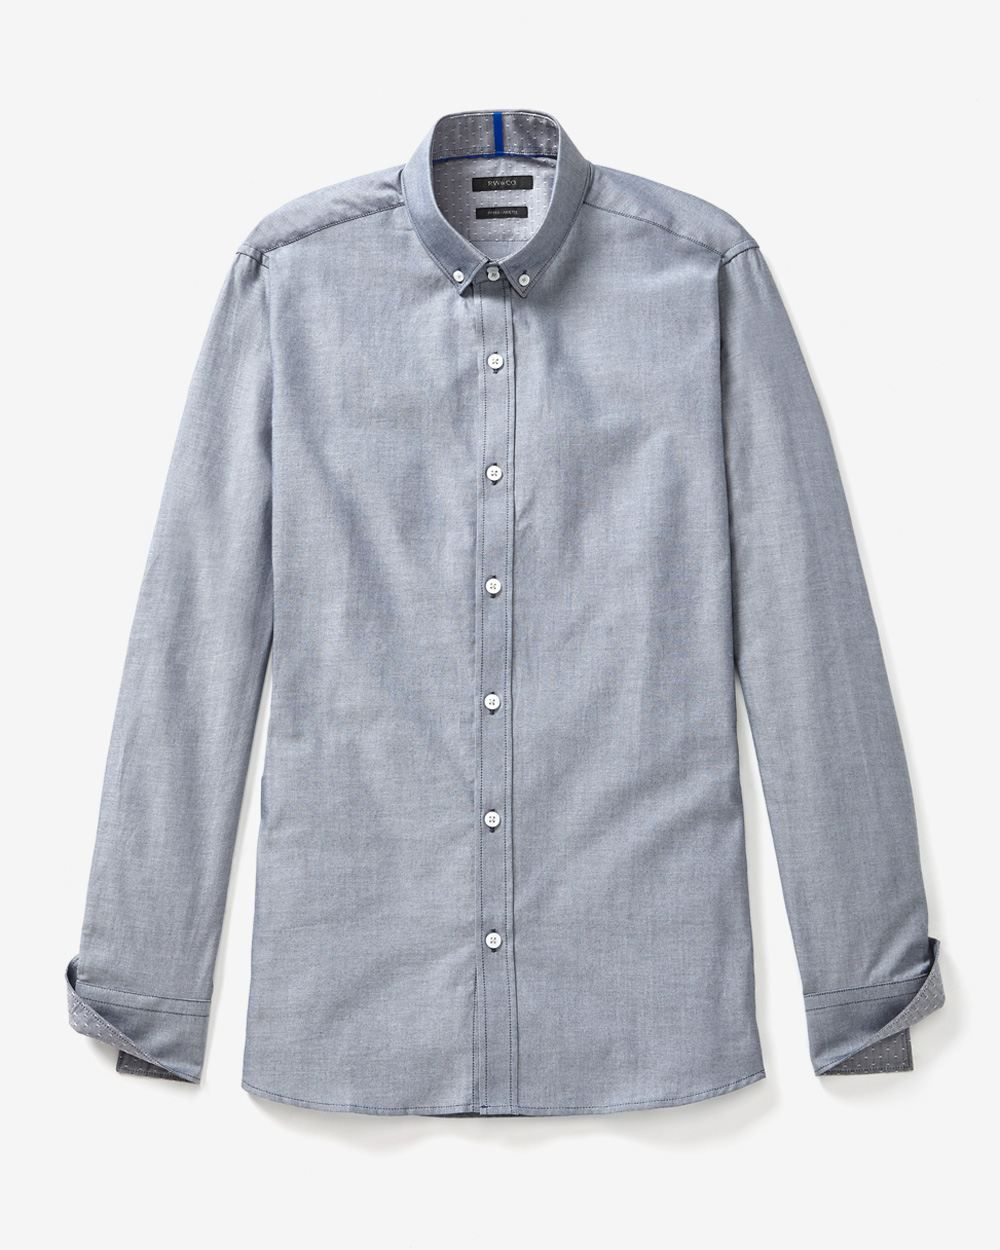 Fitted long sleeve shirt in two-tone Oxford   RW&CO.